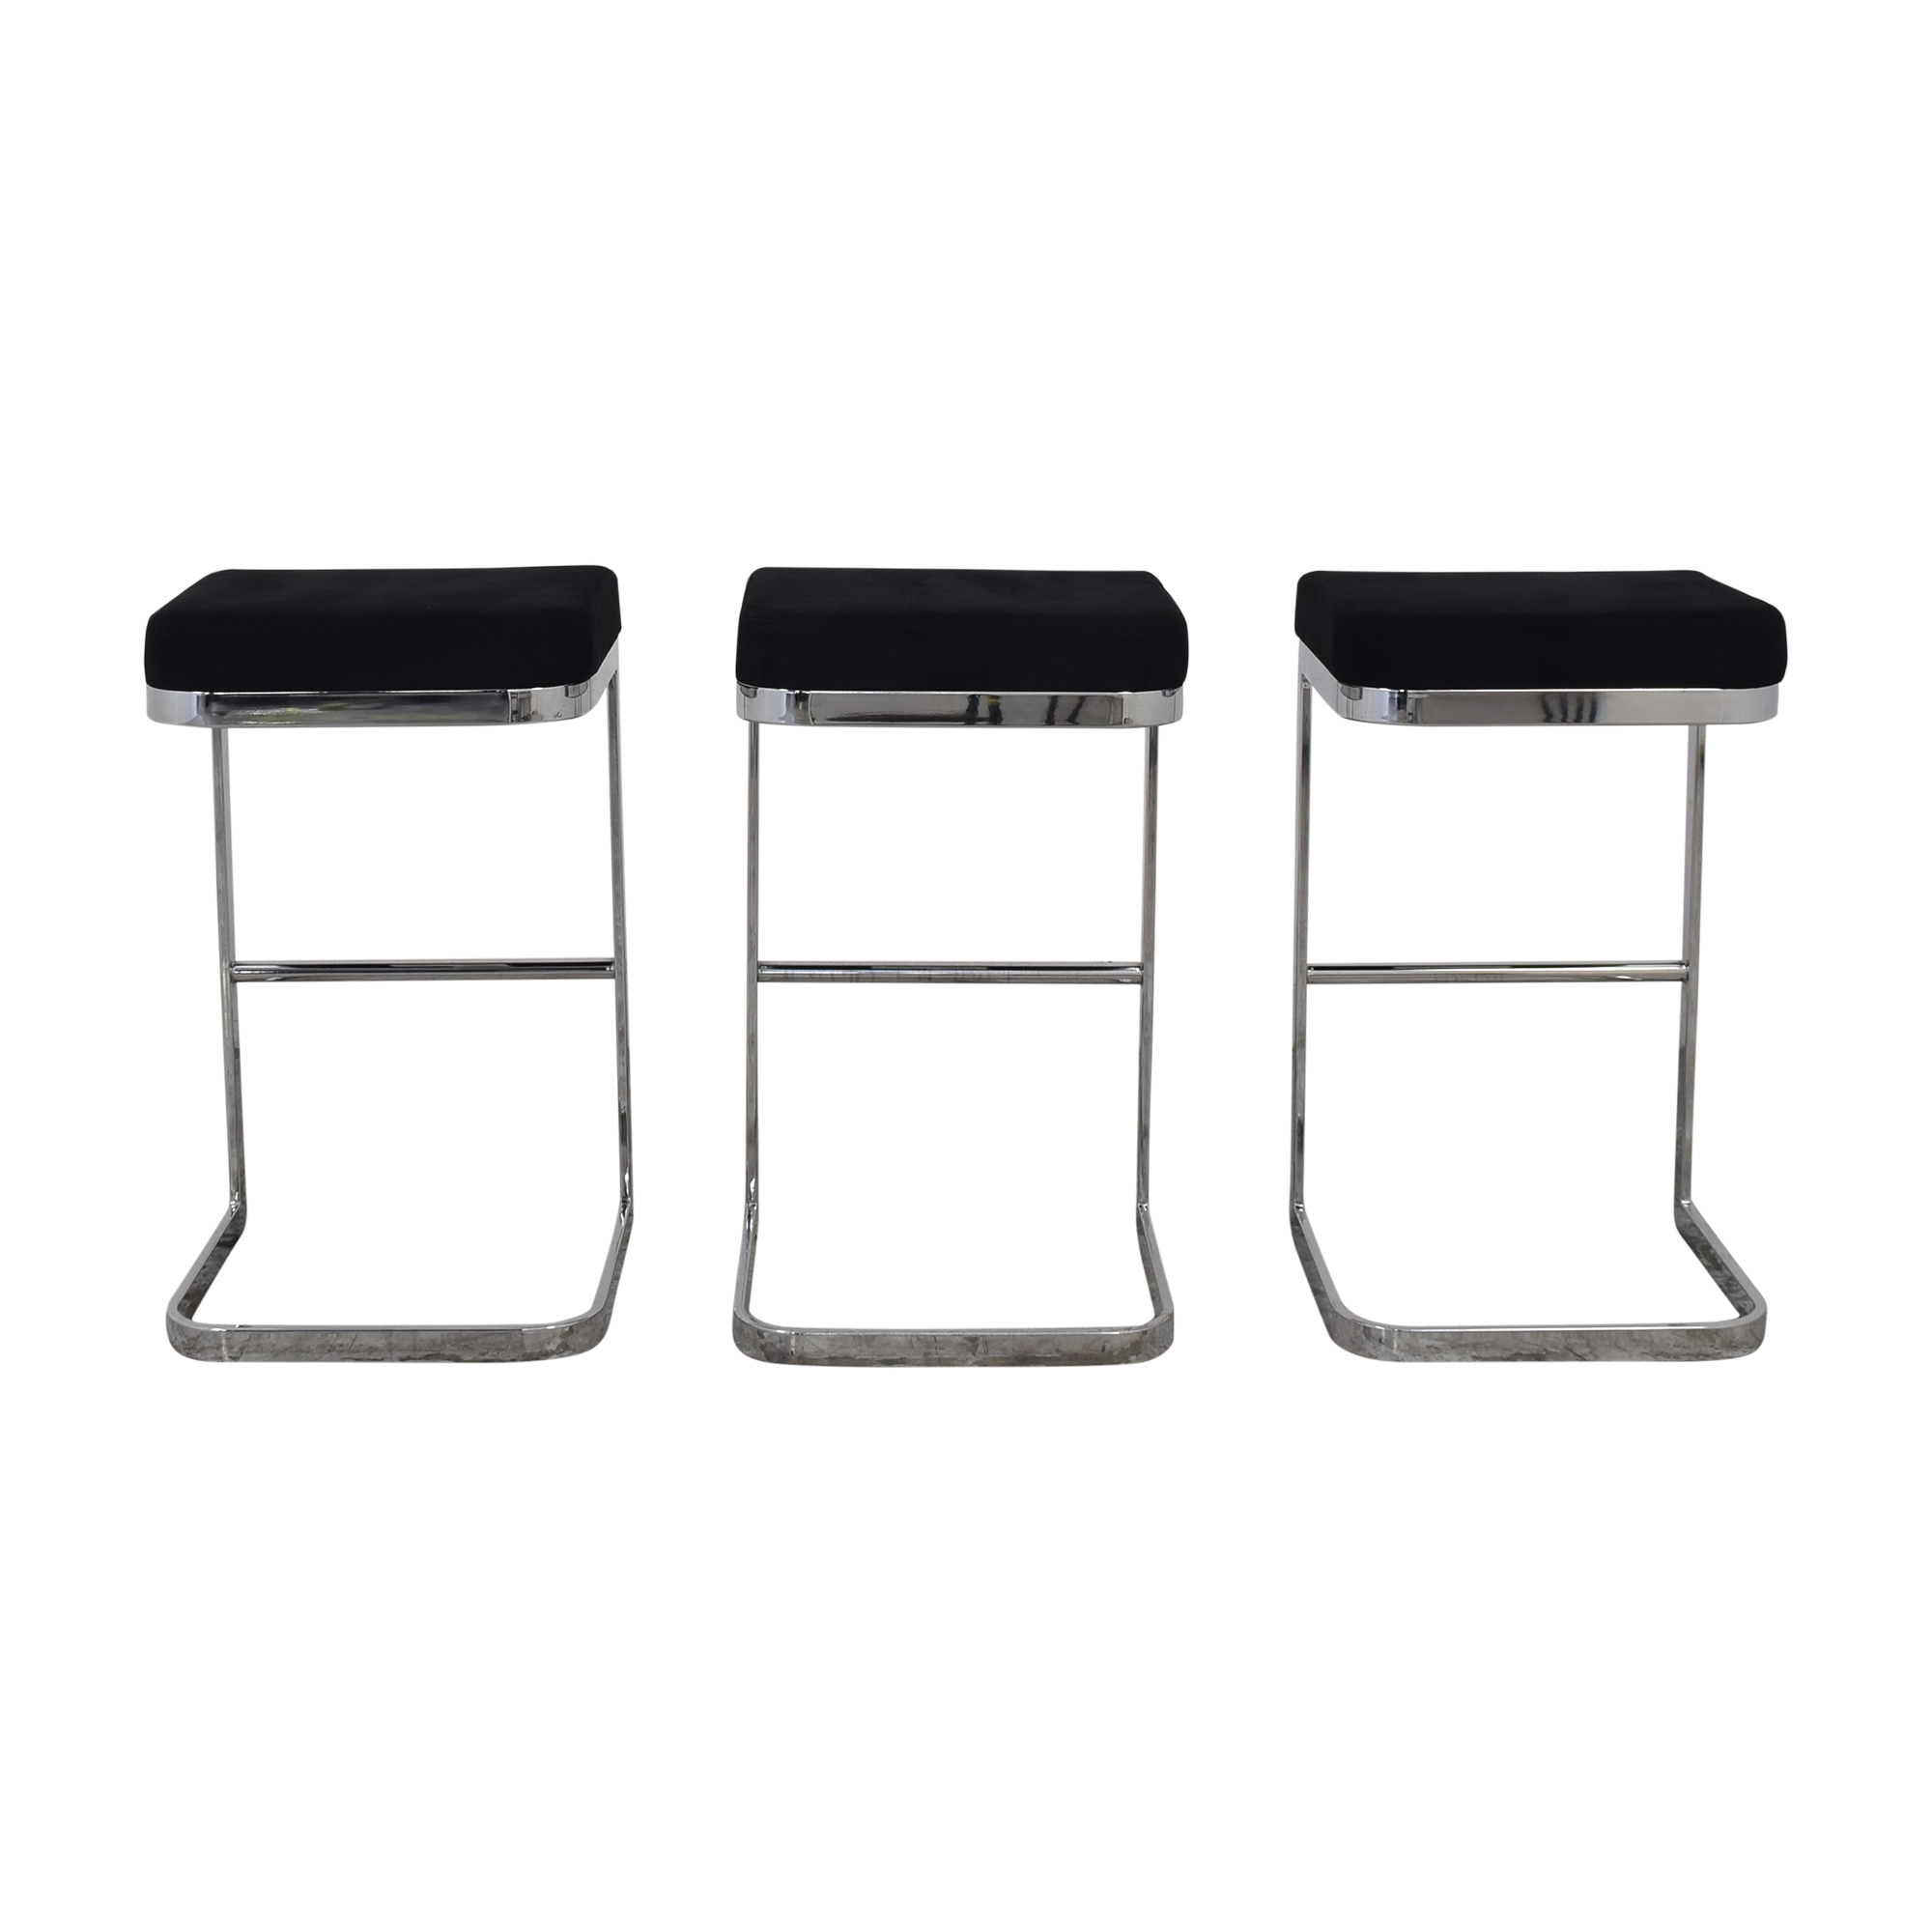 Crate & Barrel CB2 Mack Bar Stools ma